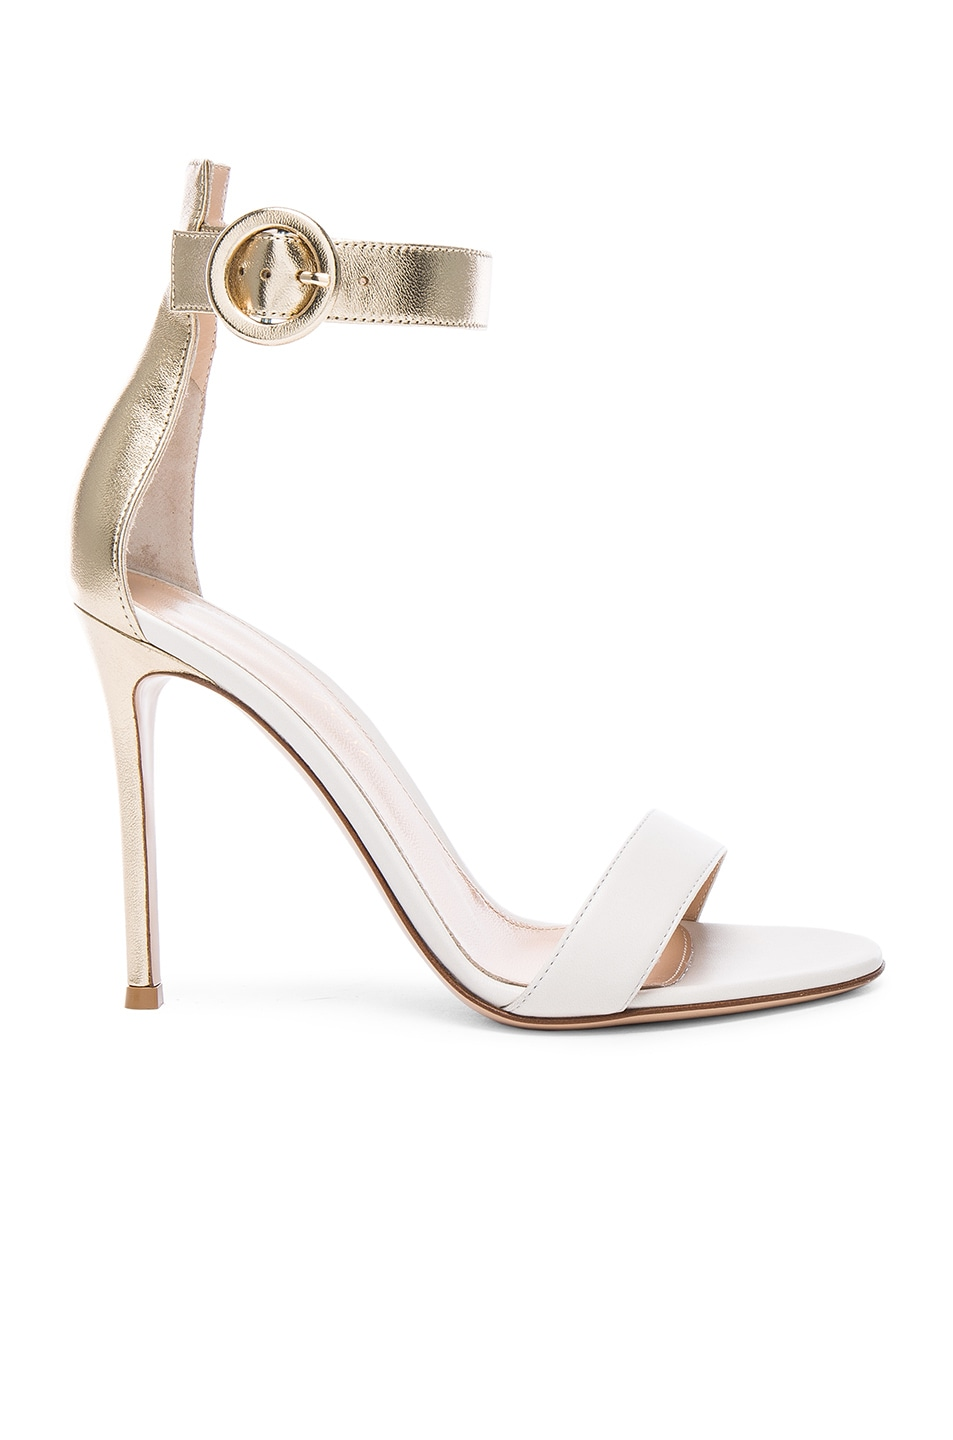 Image 1 of Gianvito Rossi Leather Portofino Heels in Mekong & Off White